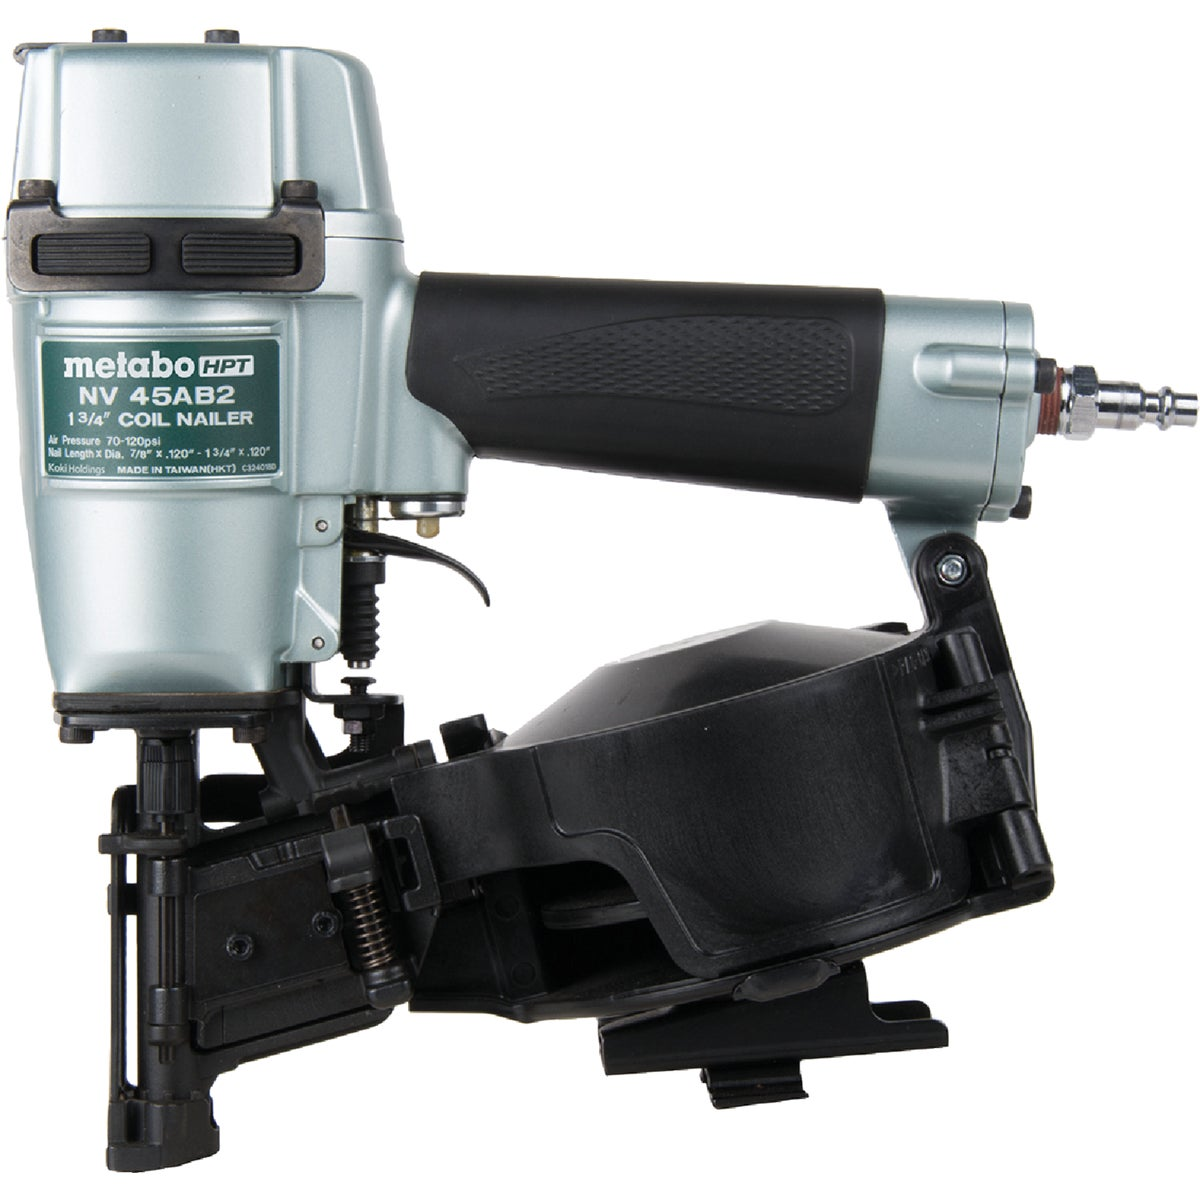 COIL ROOFING NAILER - NV45AB2 by Hitachi Power Tools